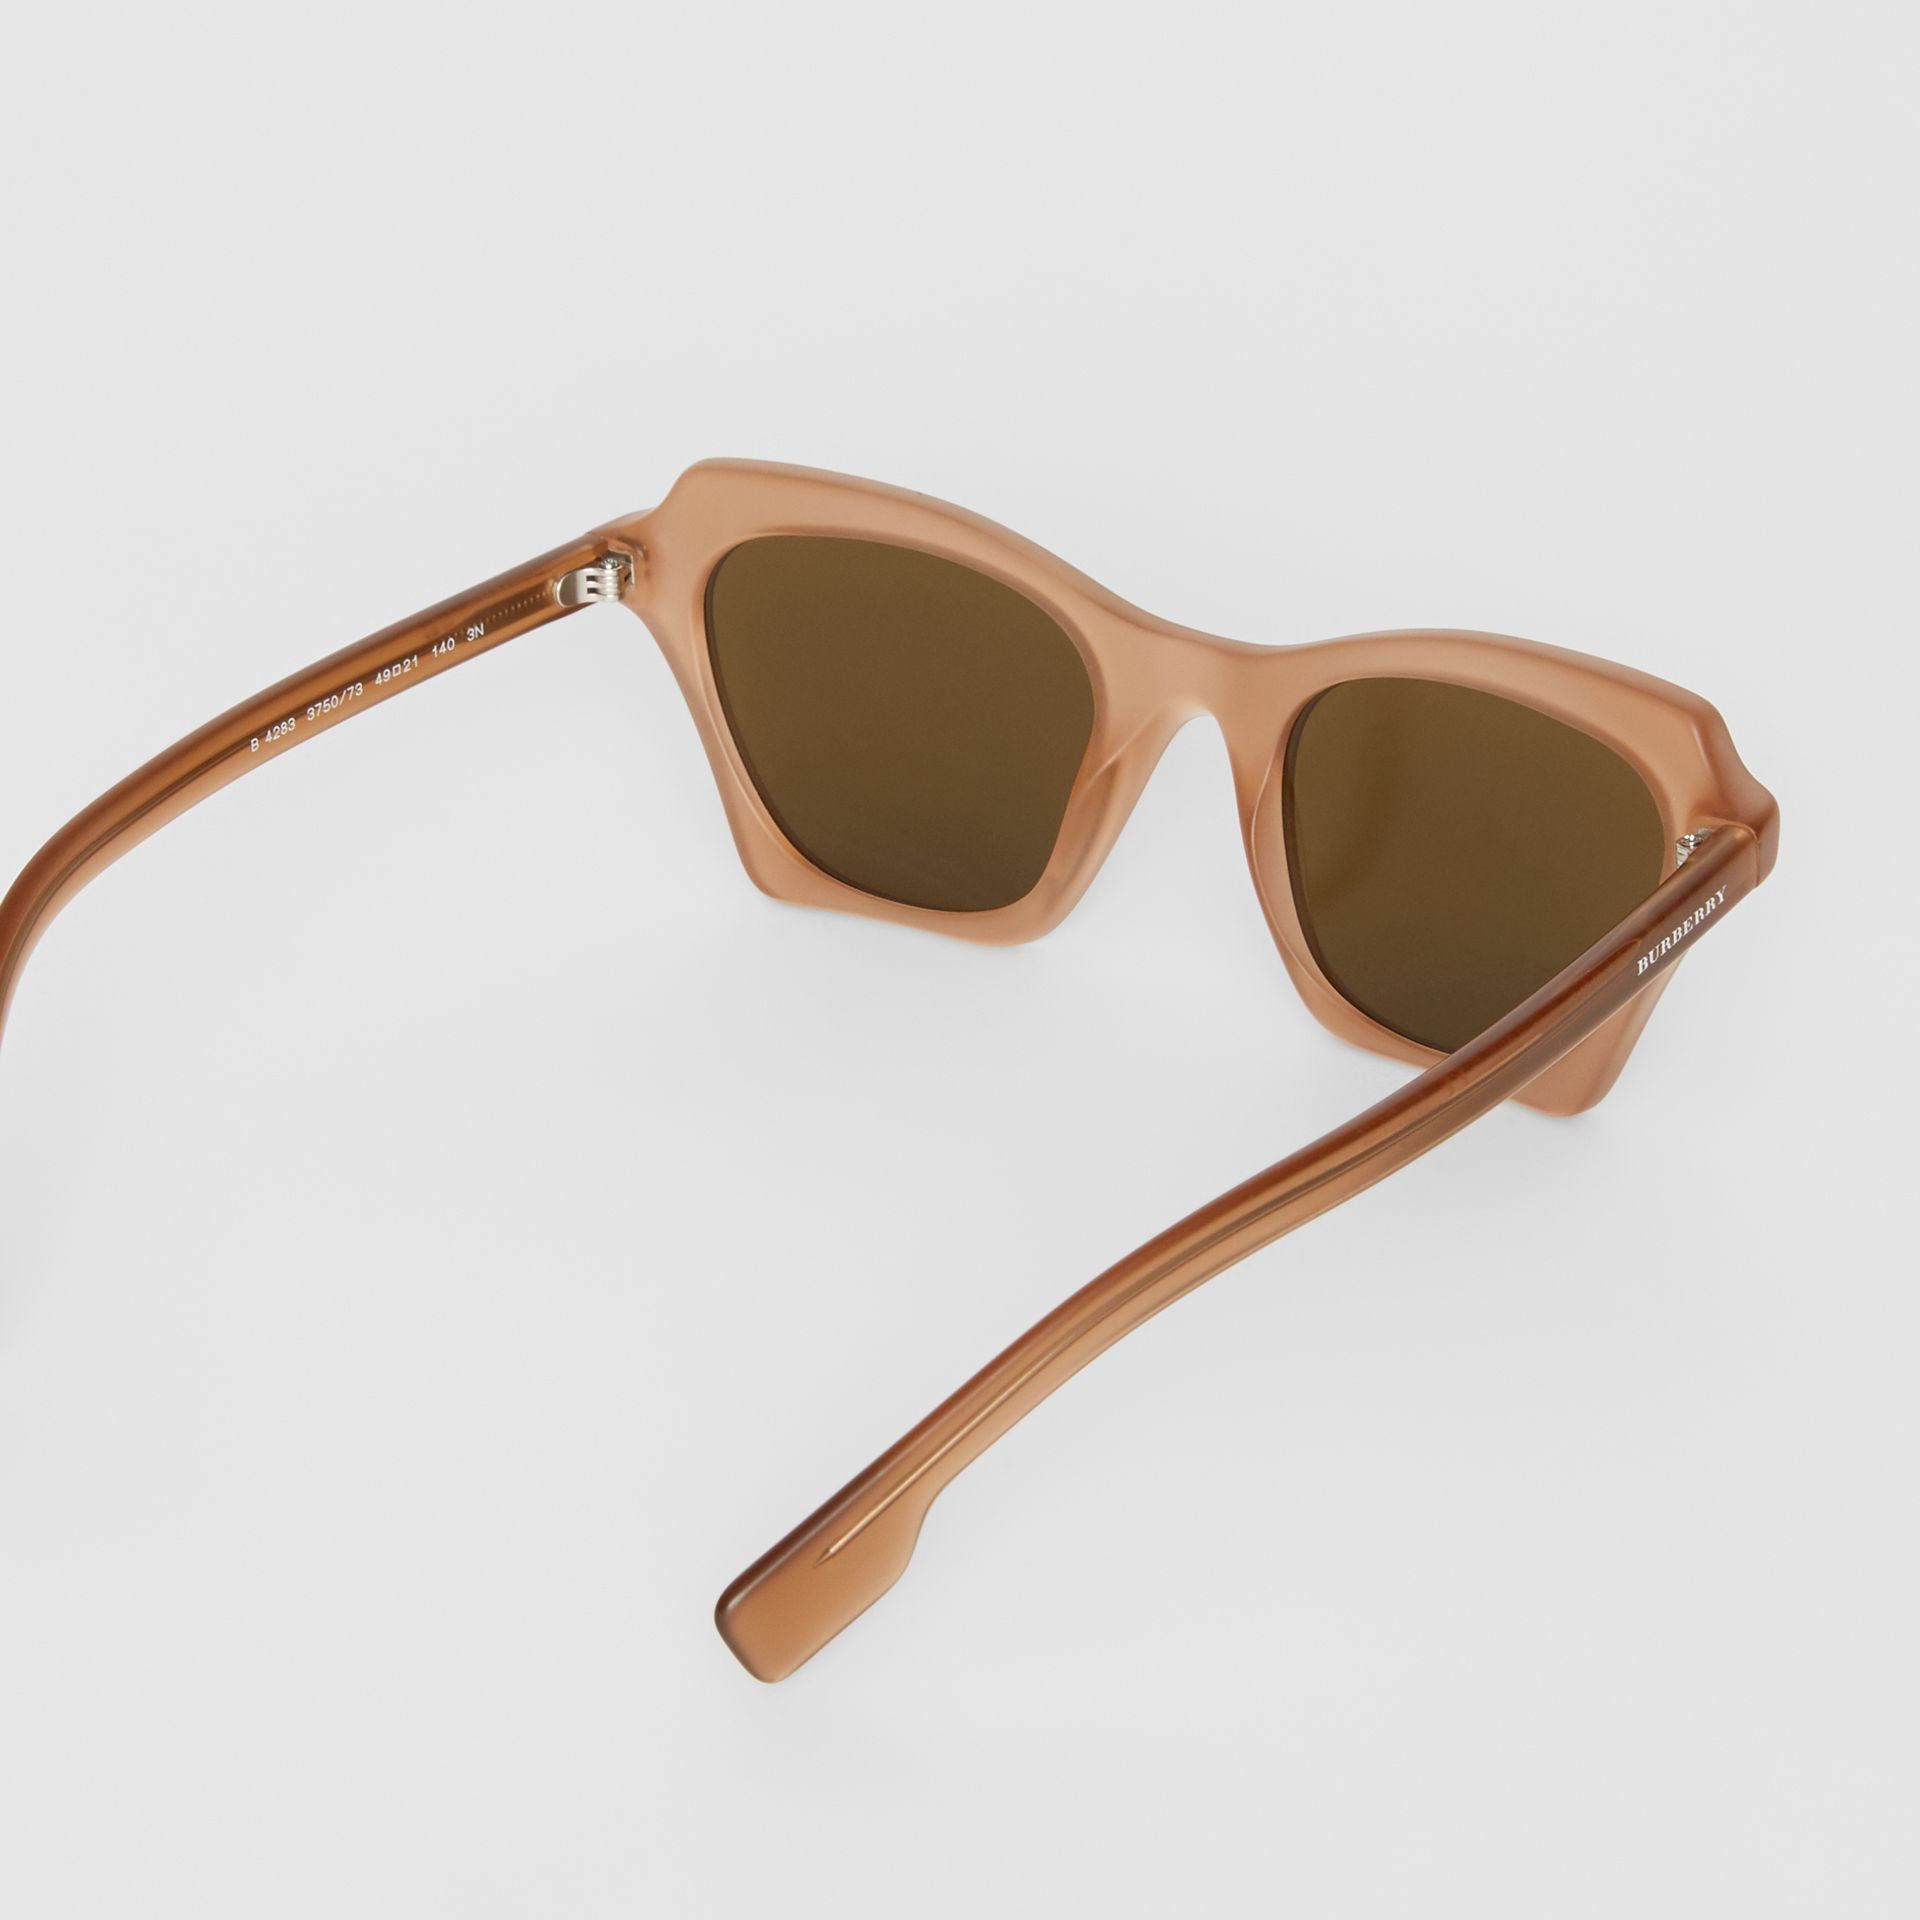 Butterfly Frame Sunglasses in Brown - Women | Burberry United States - gallery image 4